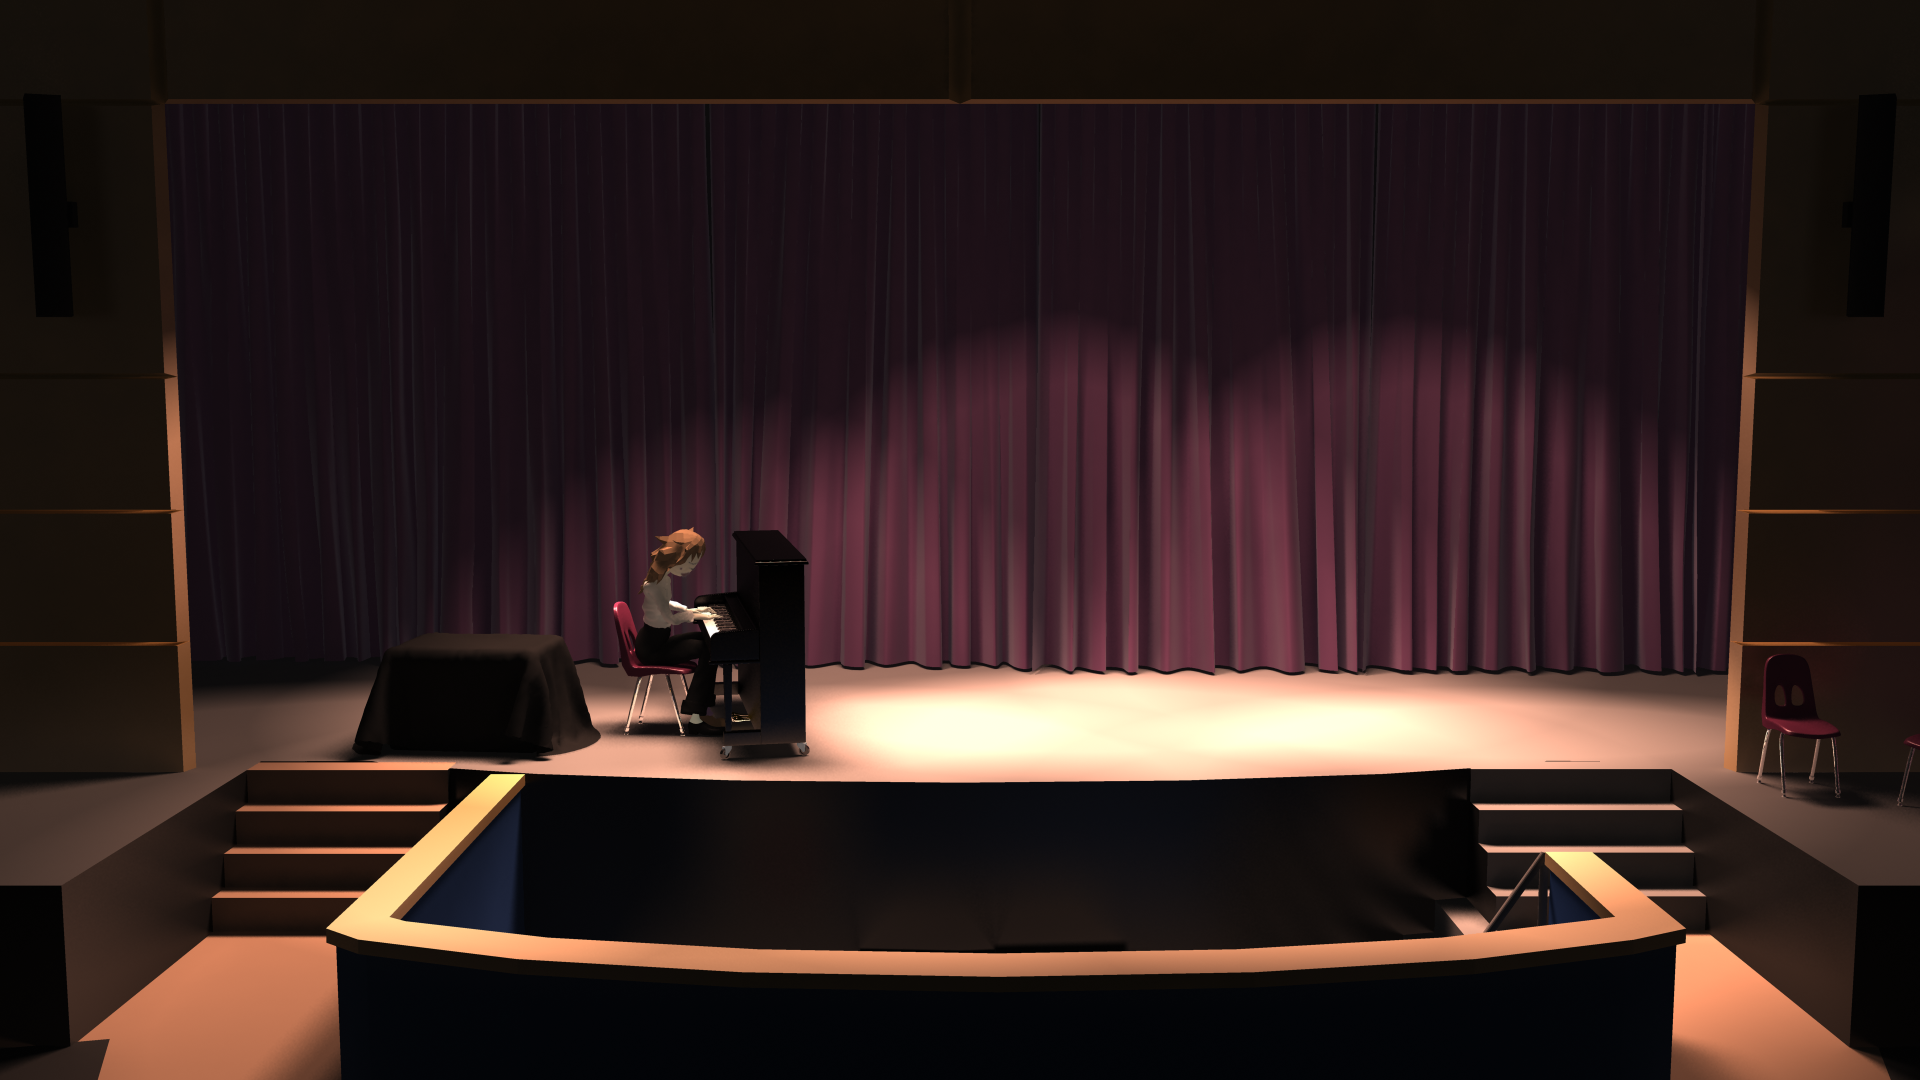 Digital image of a dark theater with a piano on stage.